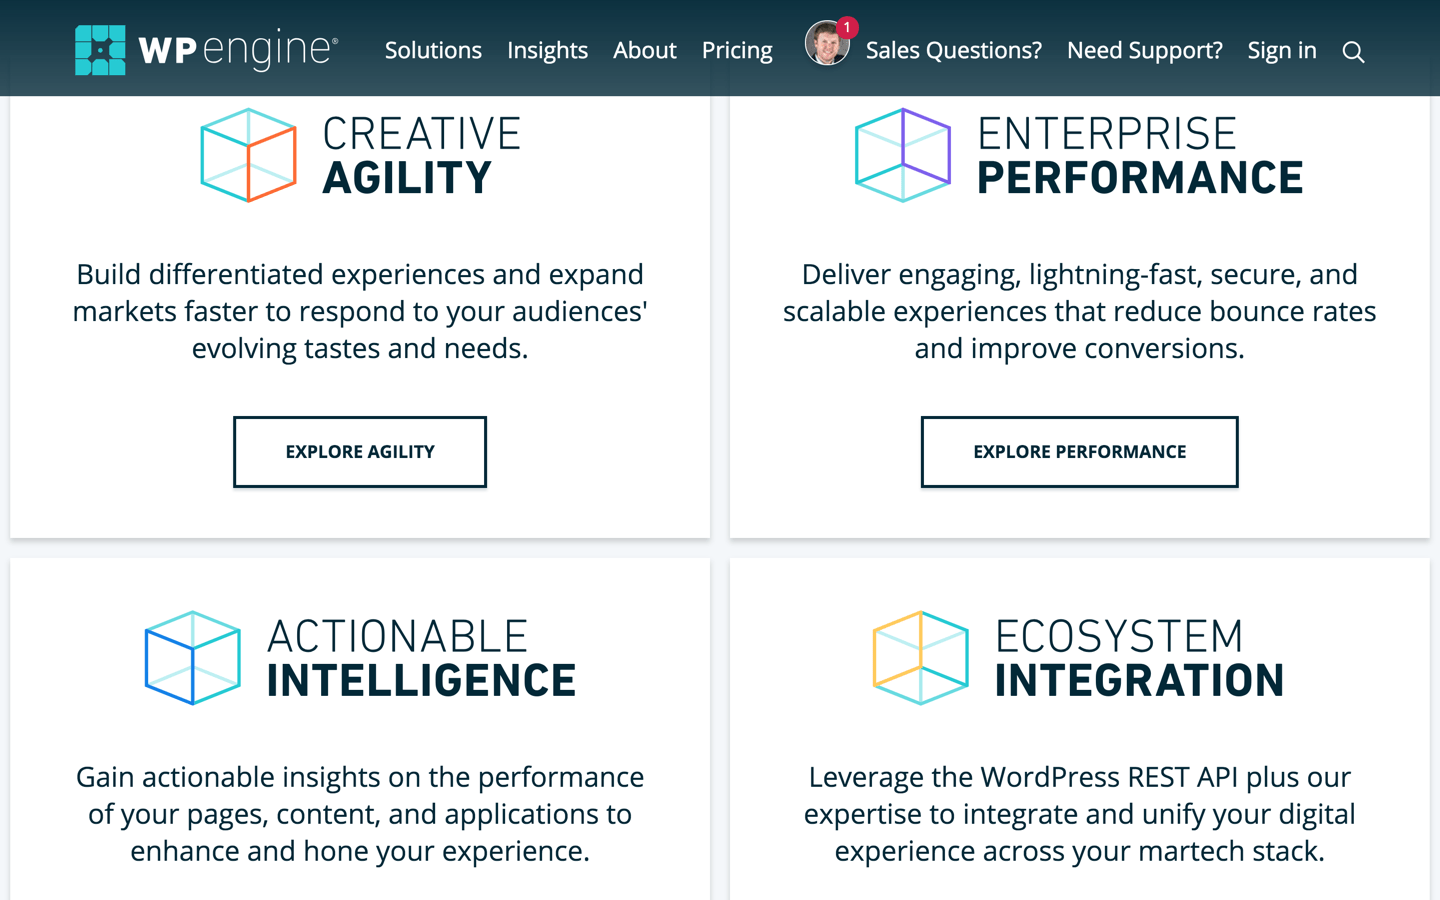 WP Engine offers specific business benefits